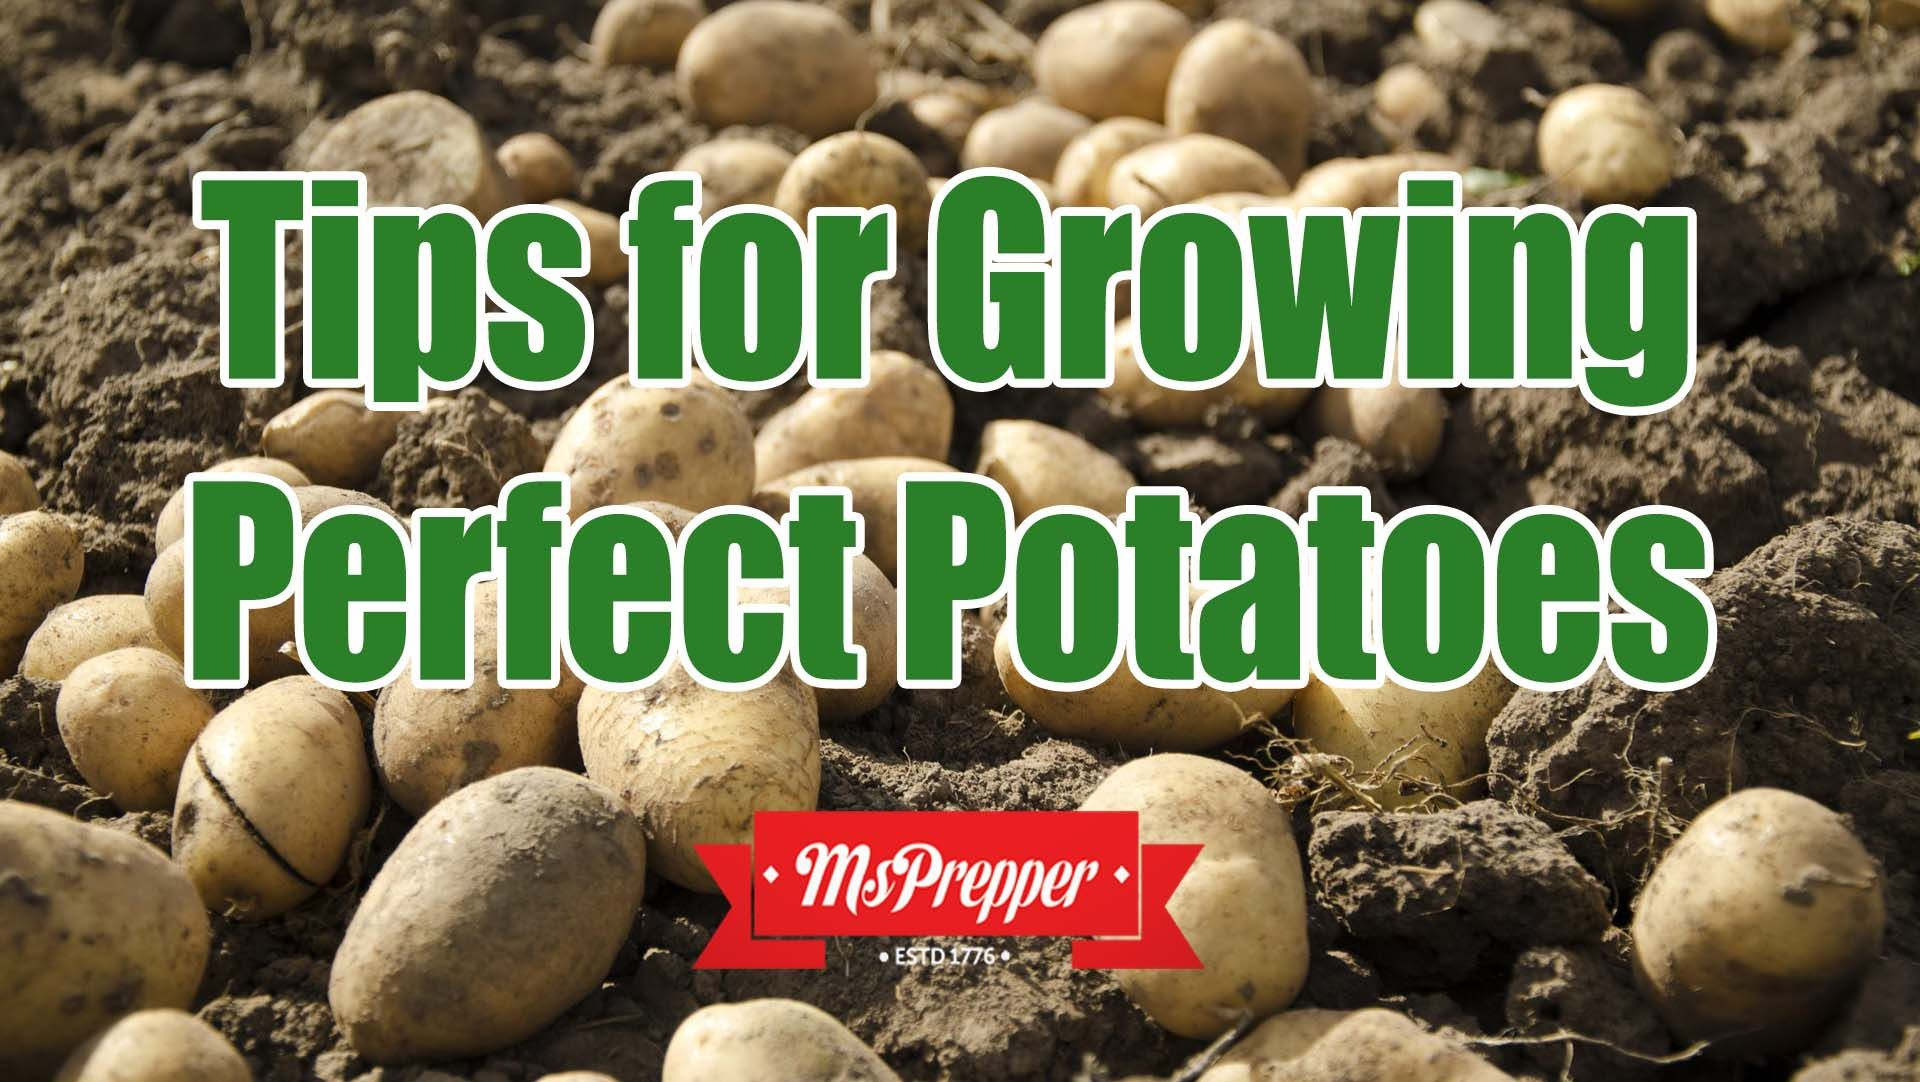 It's almost time to plant your spring garden! If you've never tried potatoes before, take the leap this year. They can yield a great harvest and can be used in a variety of ways to keep your family well fed. Tips for Growing Perfect Potatoes #Prepping #Preppers #Homesteading #Survival #MsPrepper